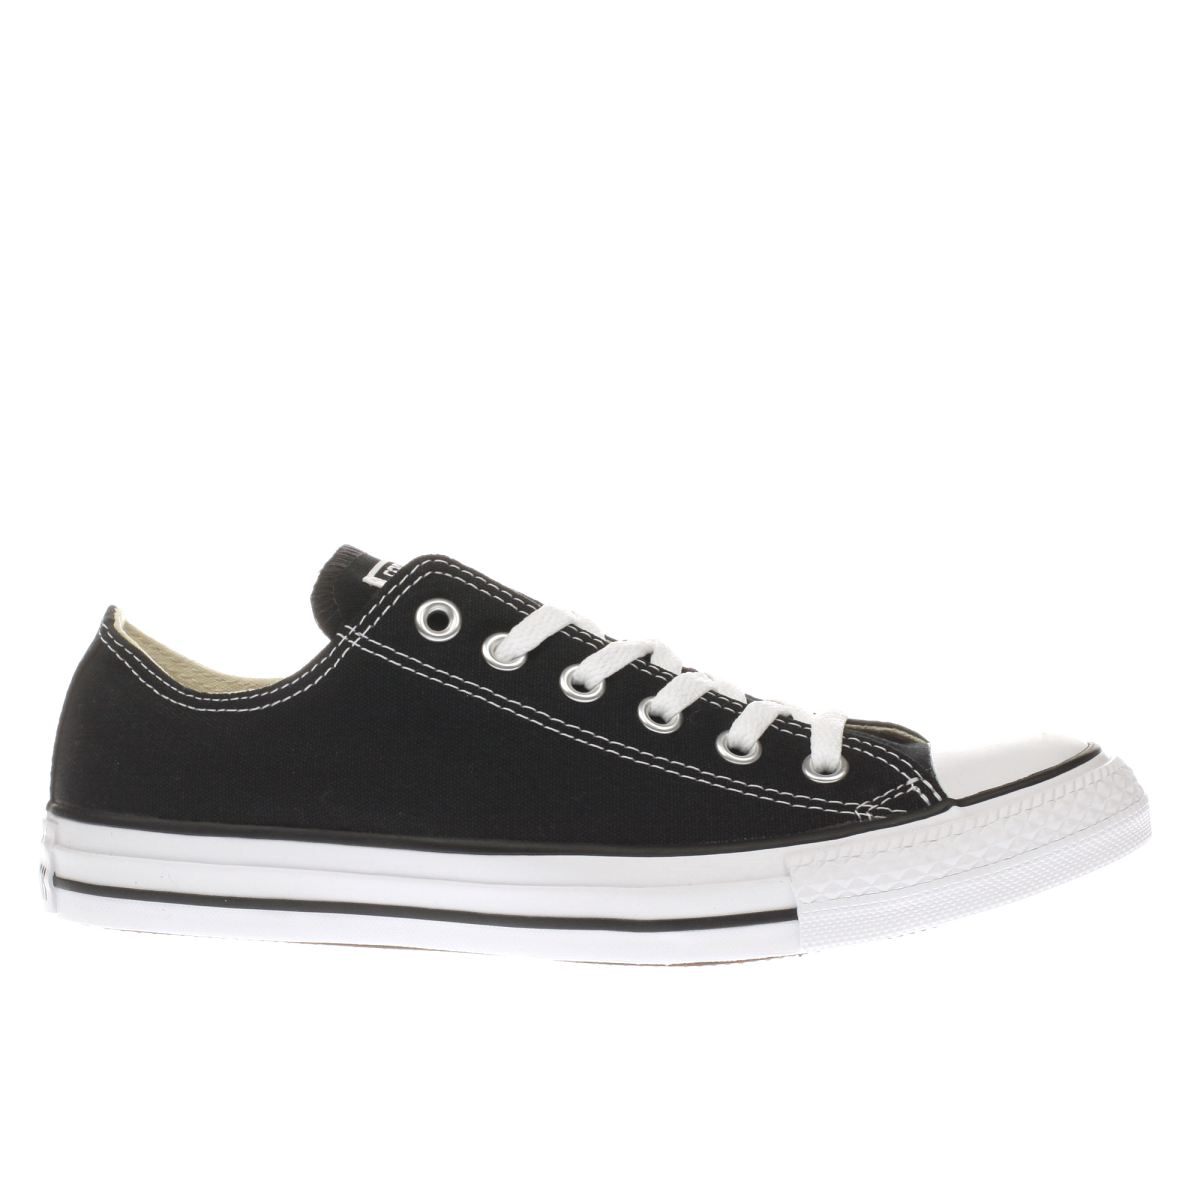 converse trainers converse black all star oxford womens trainers BRVKHPU